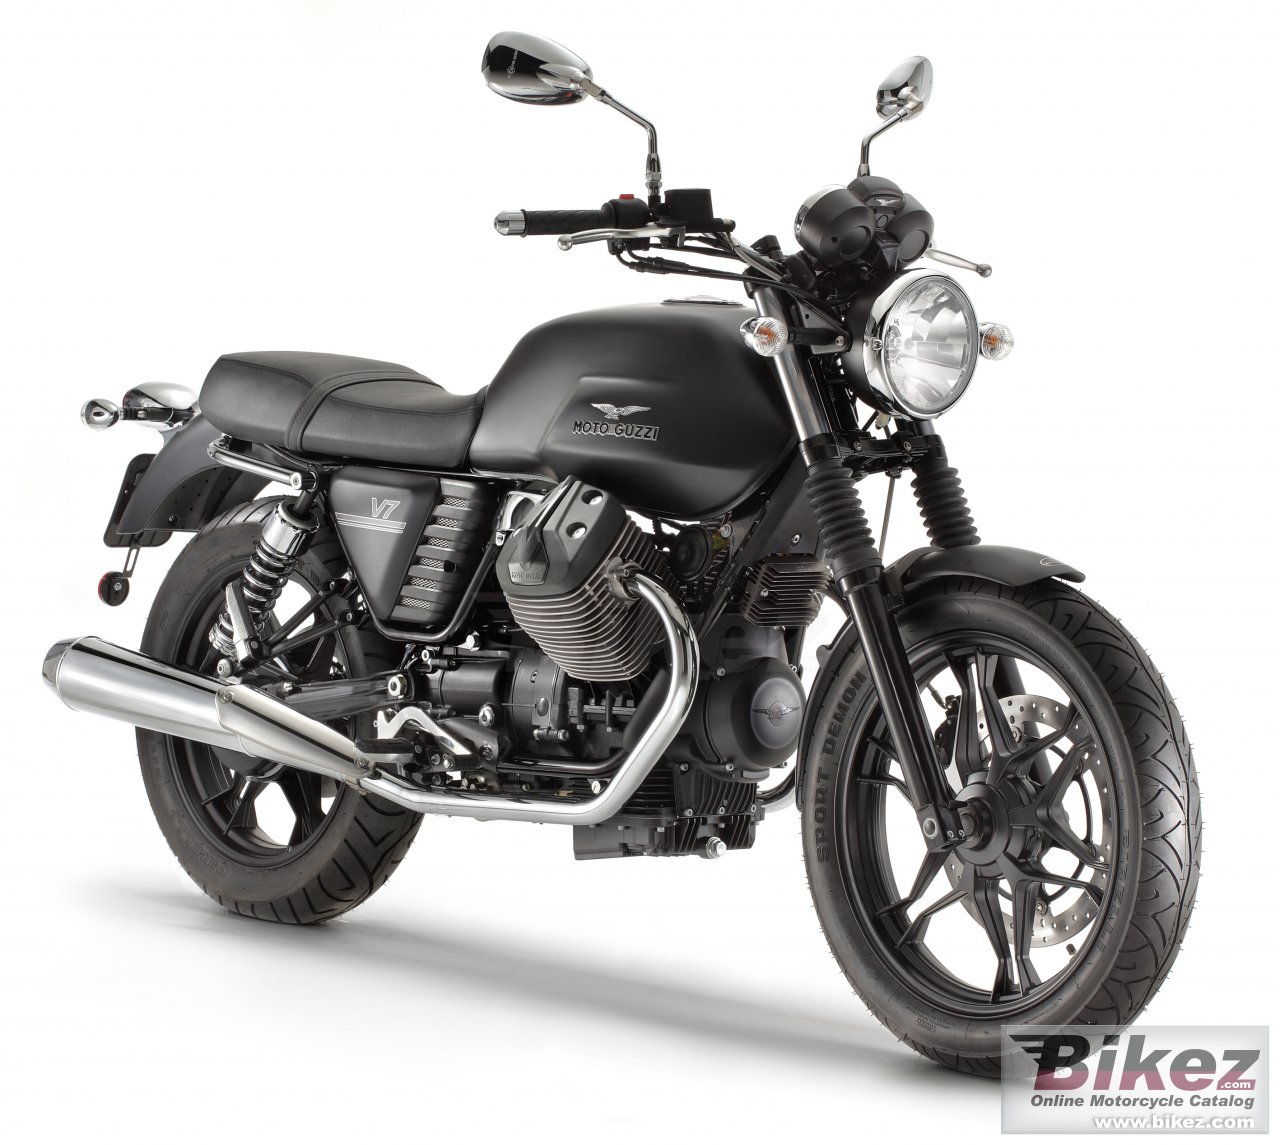 Big Moto Guzzi v7 stone picture and wallpaper from Bikez.com